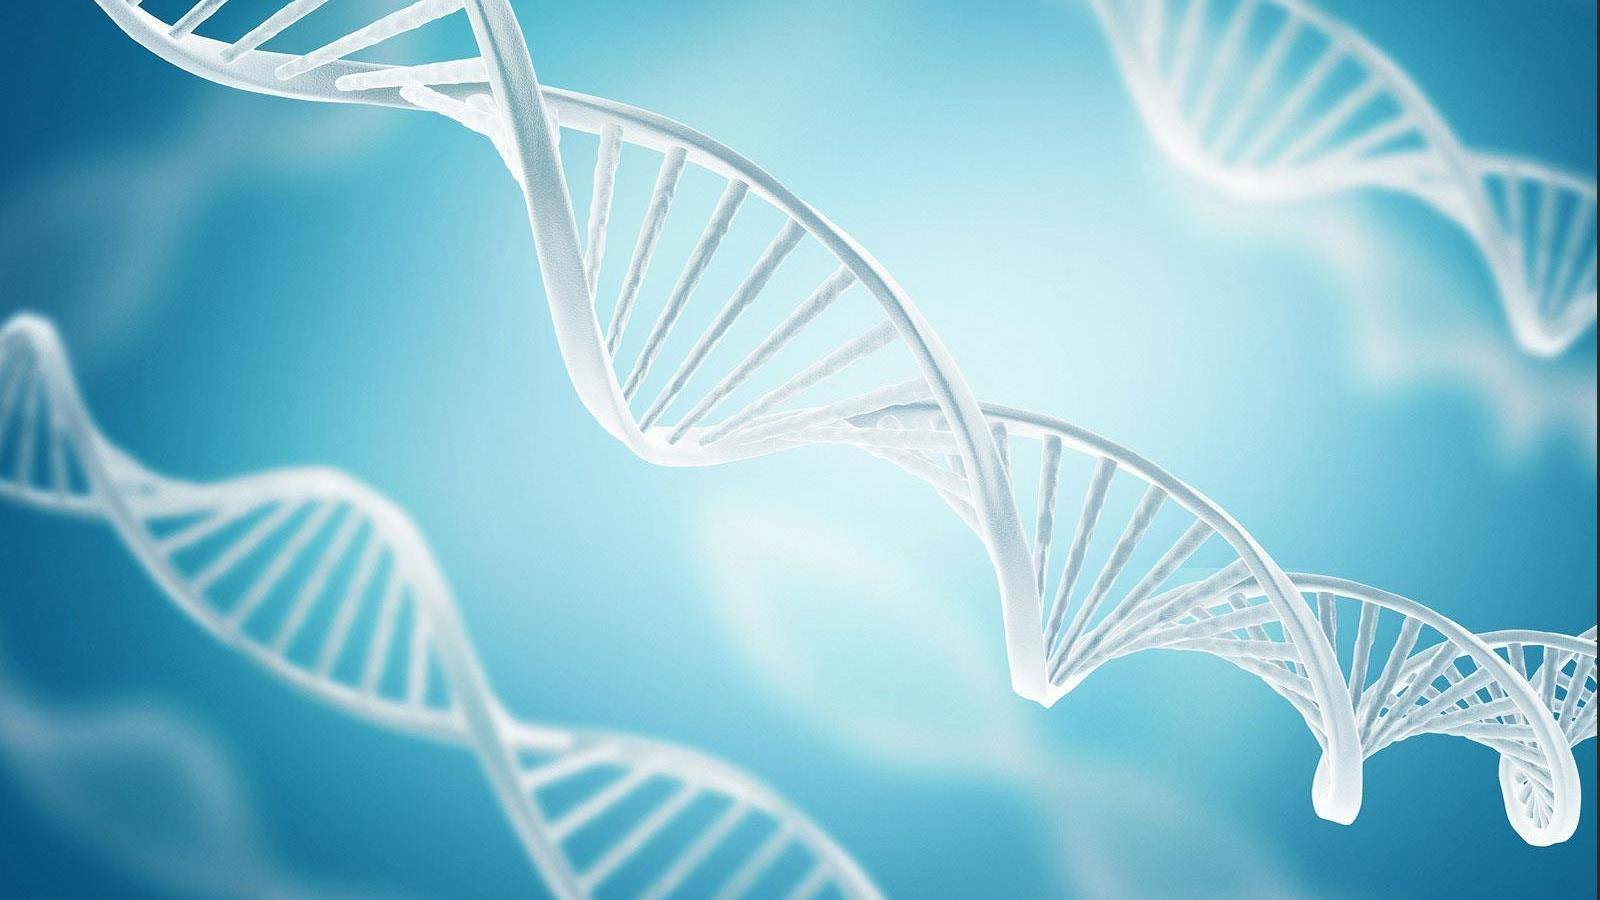 Thesis For Research Paper On Genetic Engineering